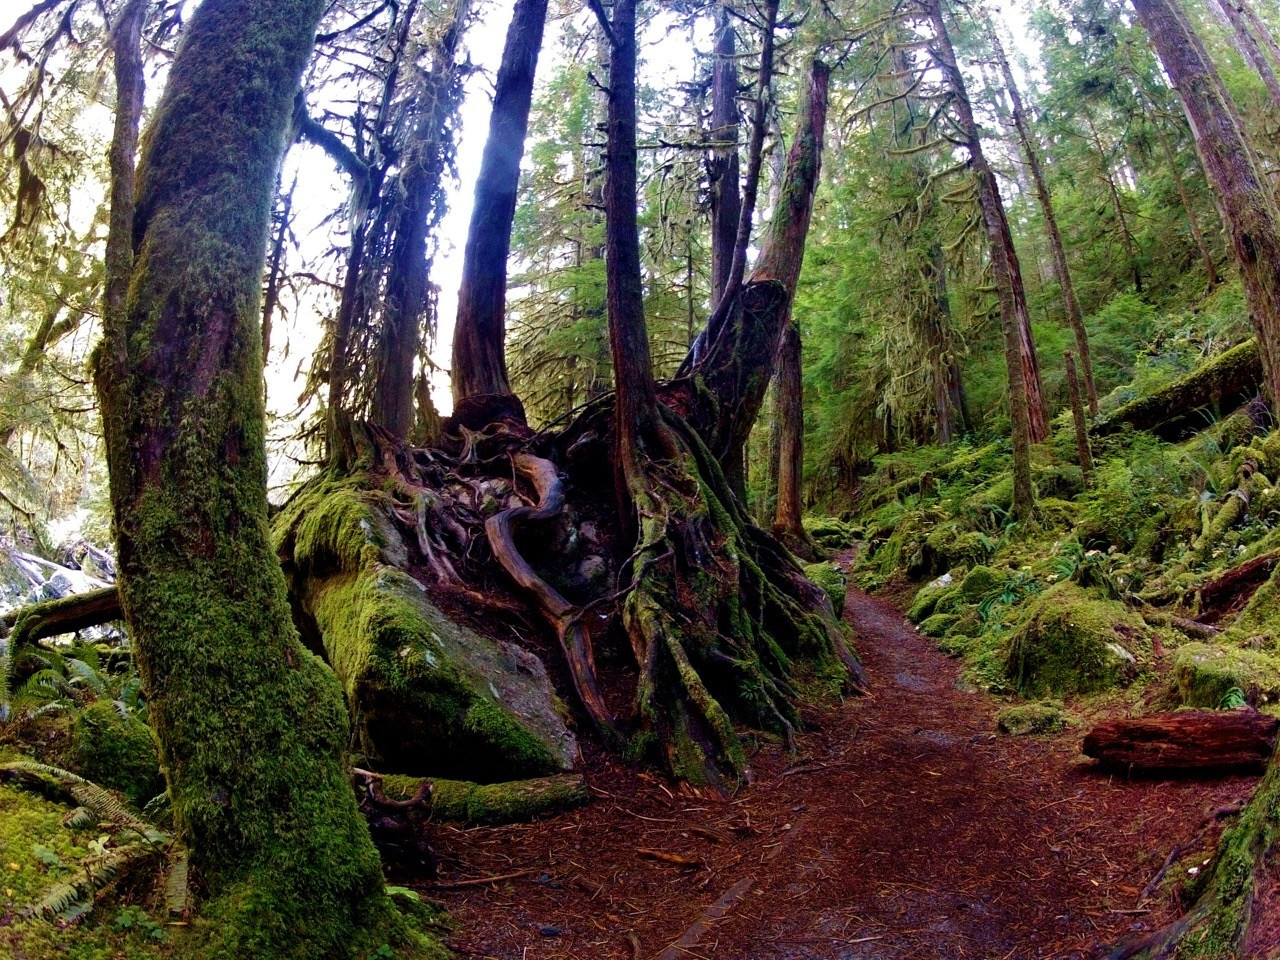 Best ideas about Staircase Olympic National Park . Save or Pin The Seven Highlights of Hiking Olympic's Staircase Loop Now.